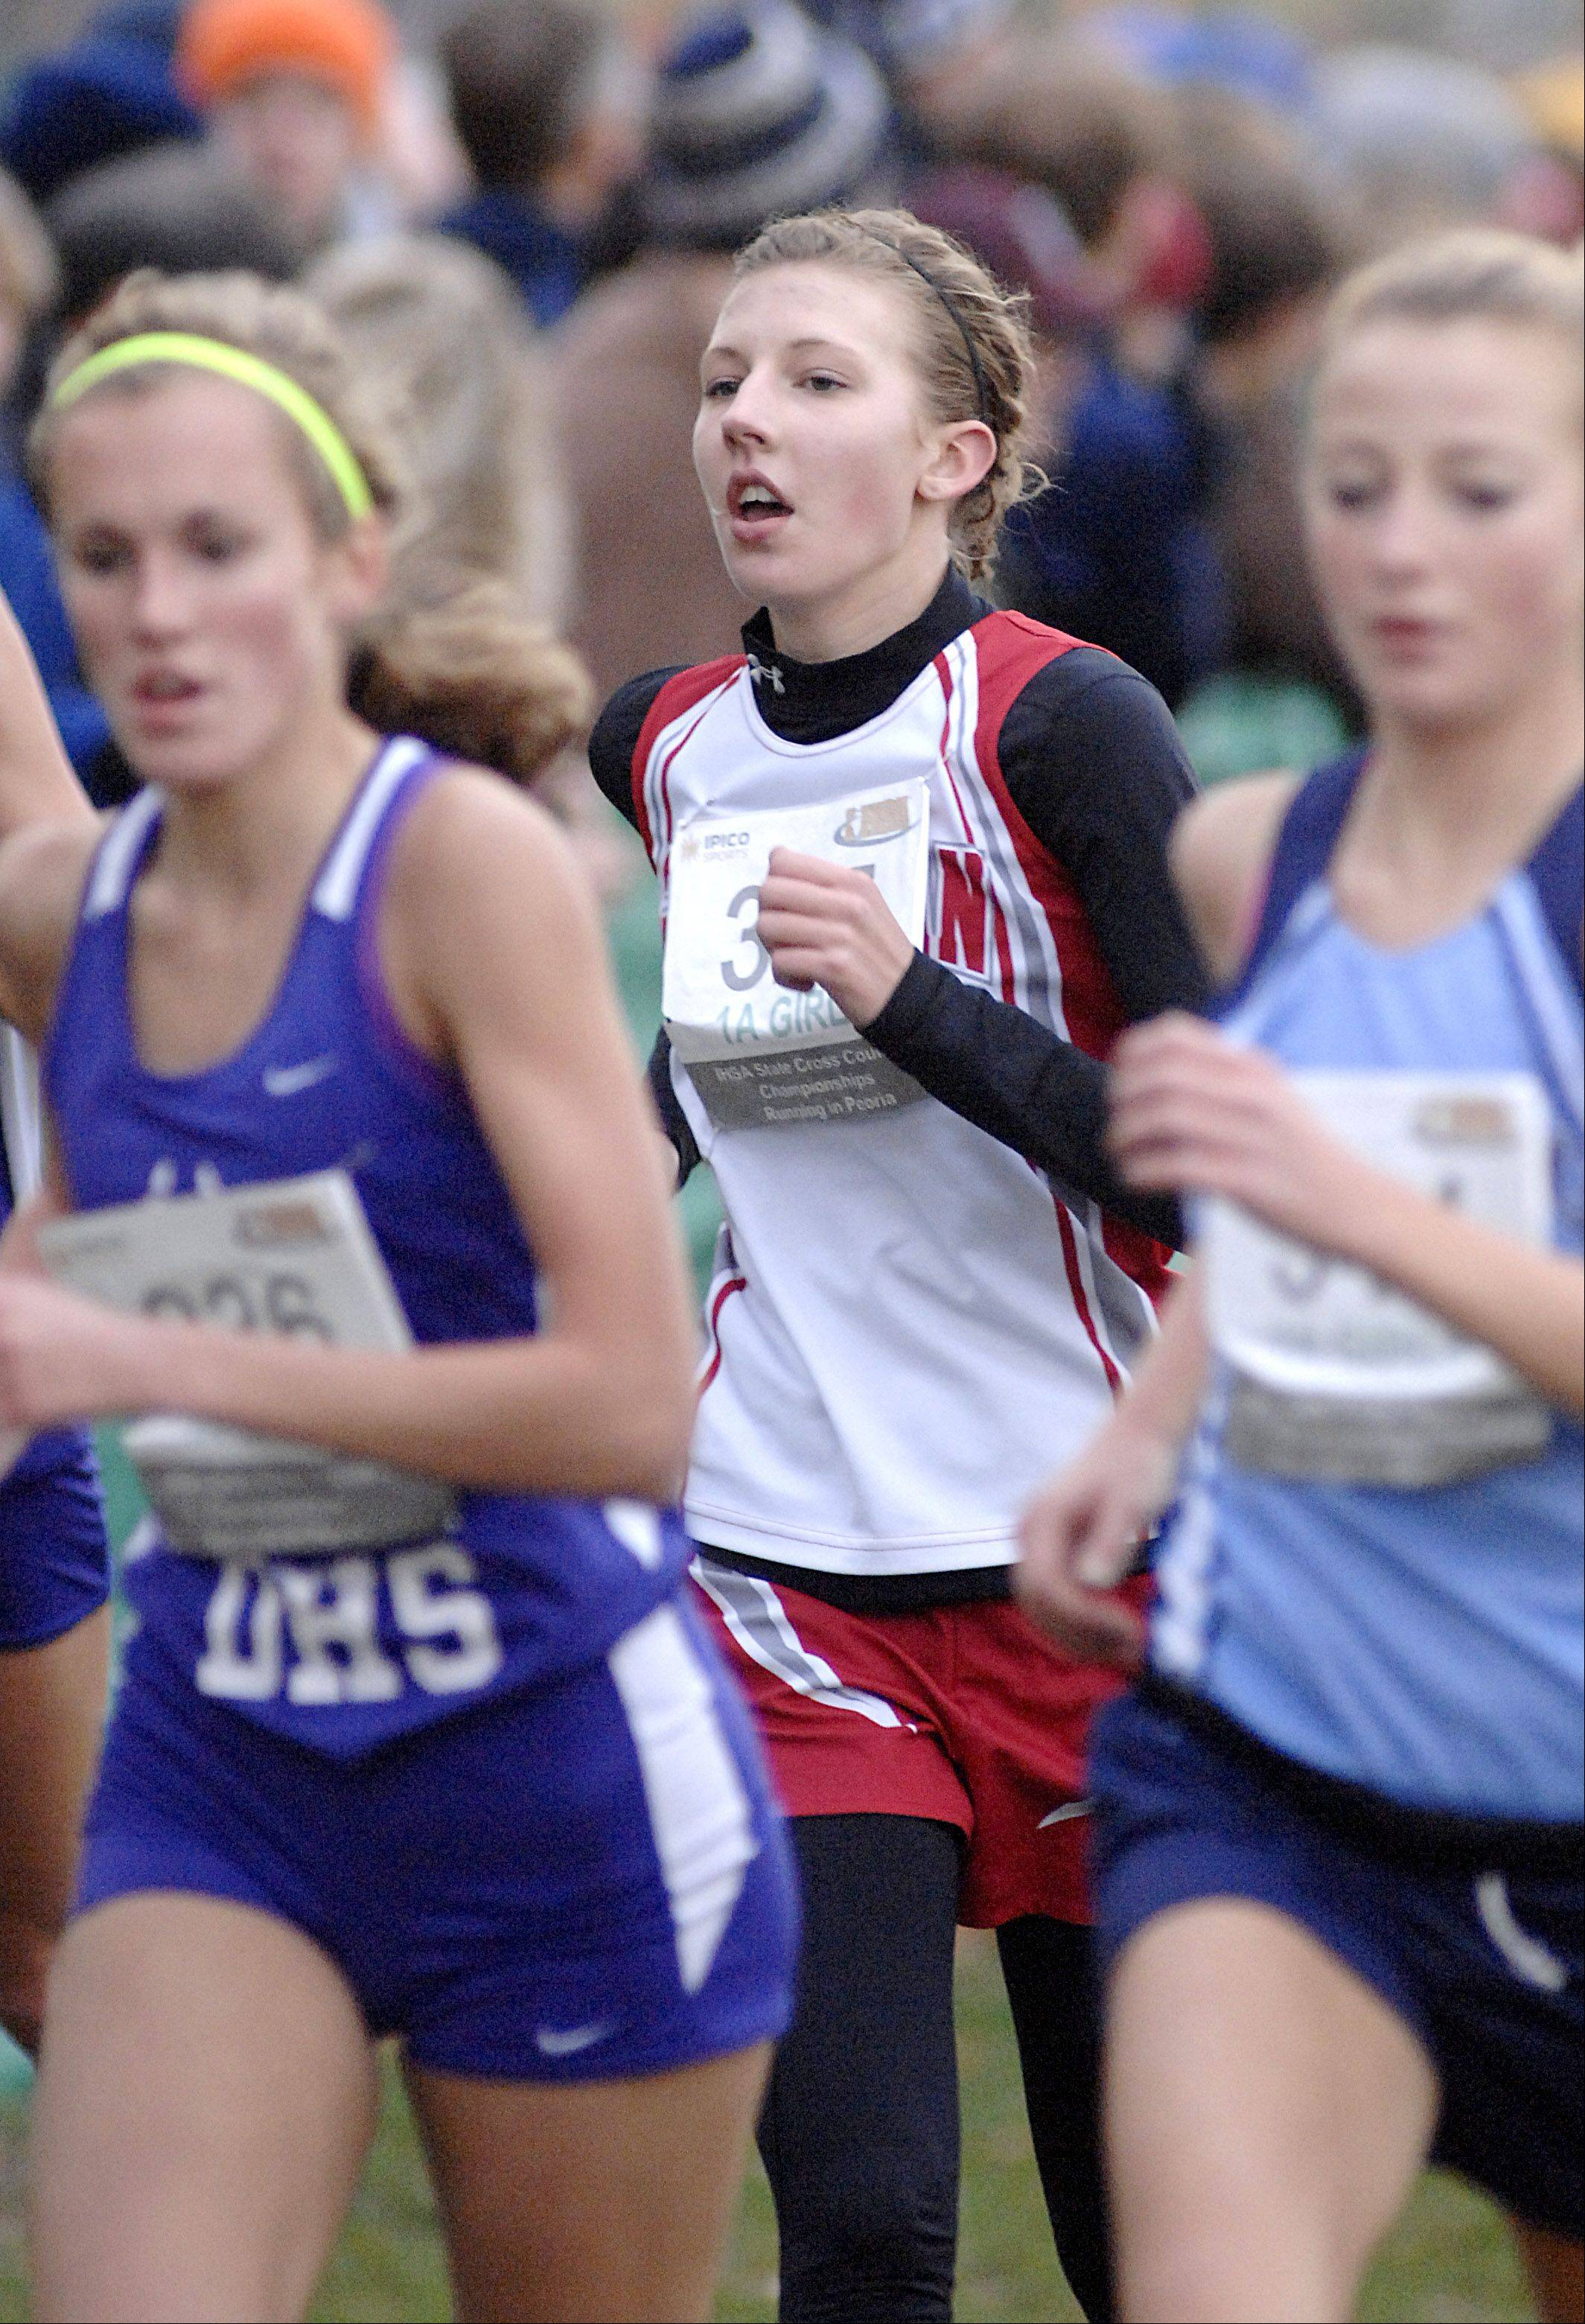 Aurora Christian's Rebecca Wert in the in the state cross country 1A final in Peoria on Saturday, November 3. Wert placed 71st.